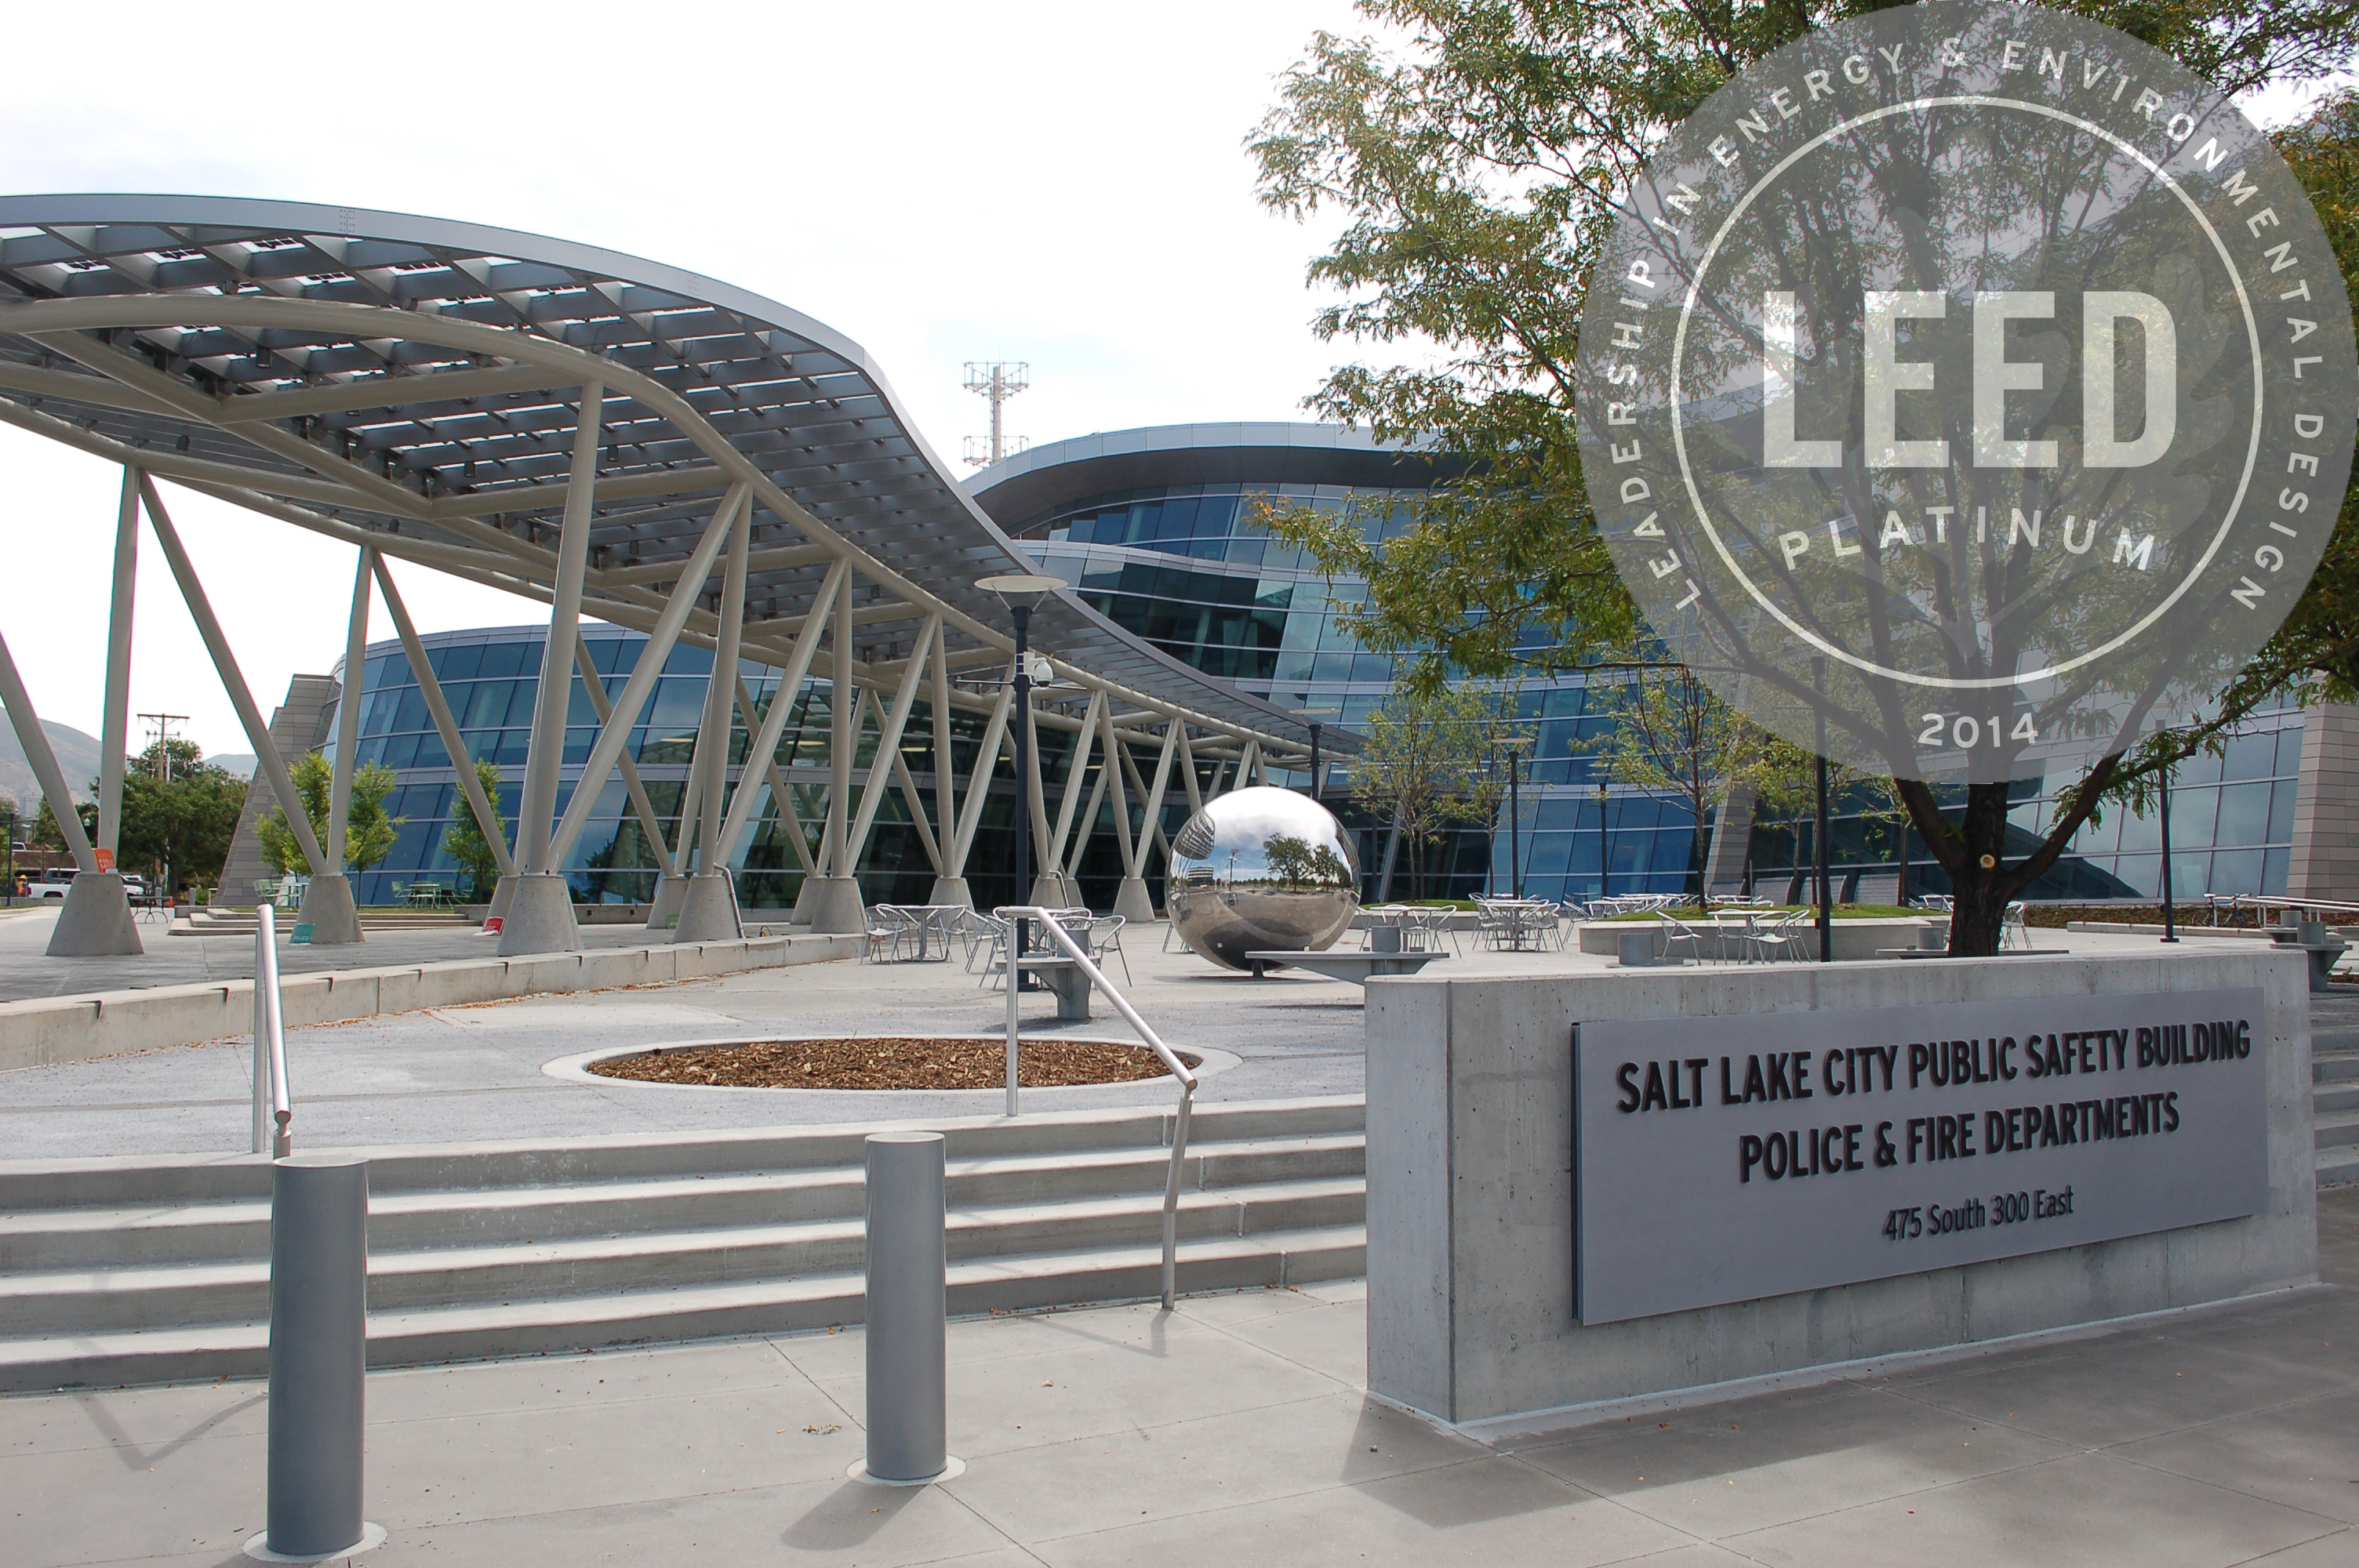 Sustainable slc plan 2015 slcgreen blog for Platinum leed certification